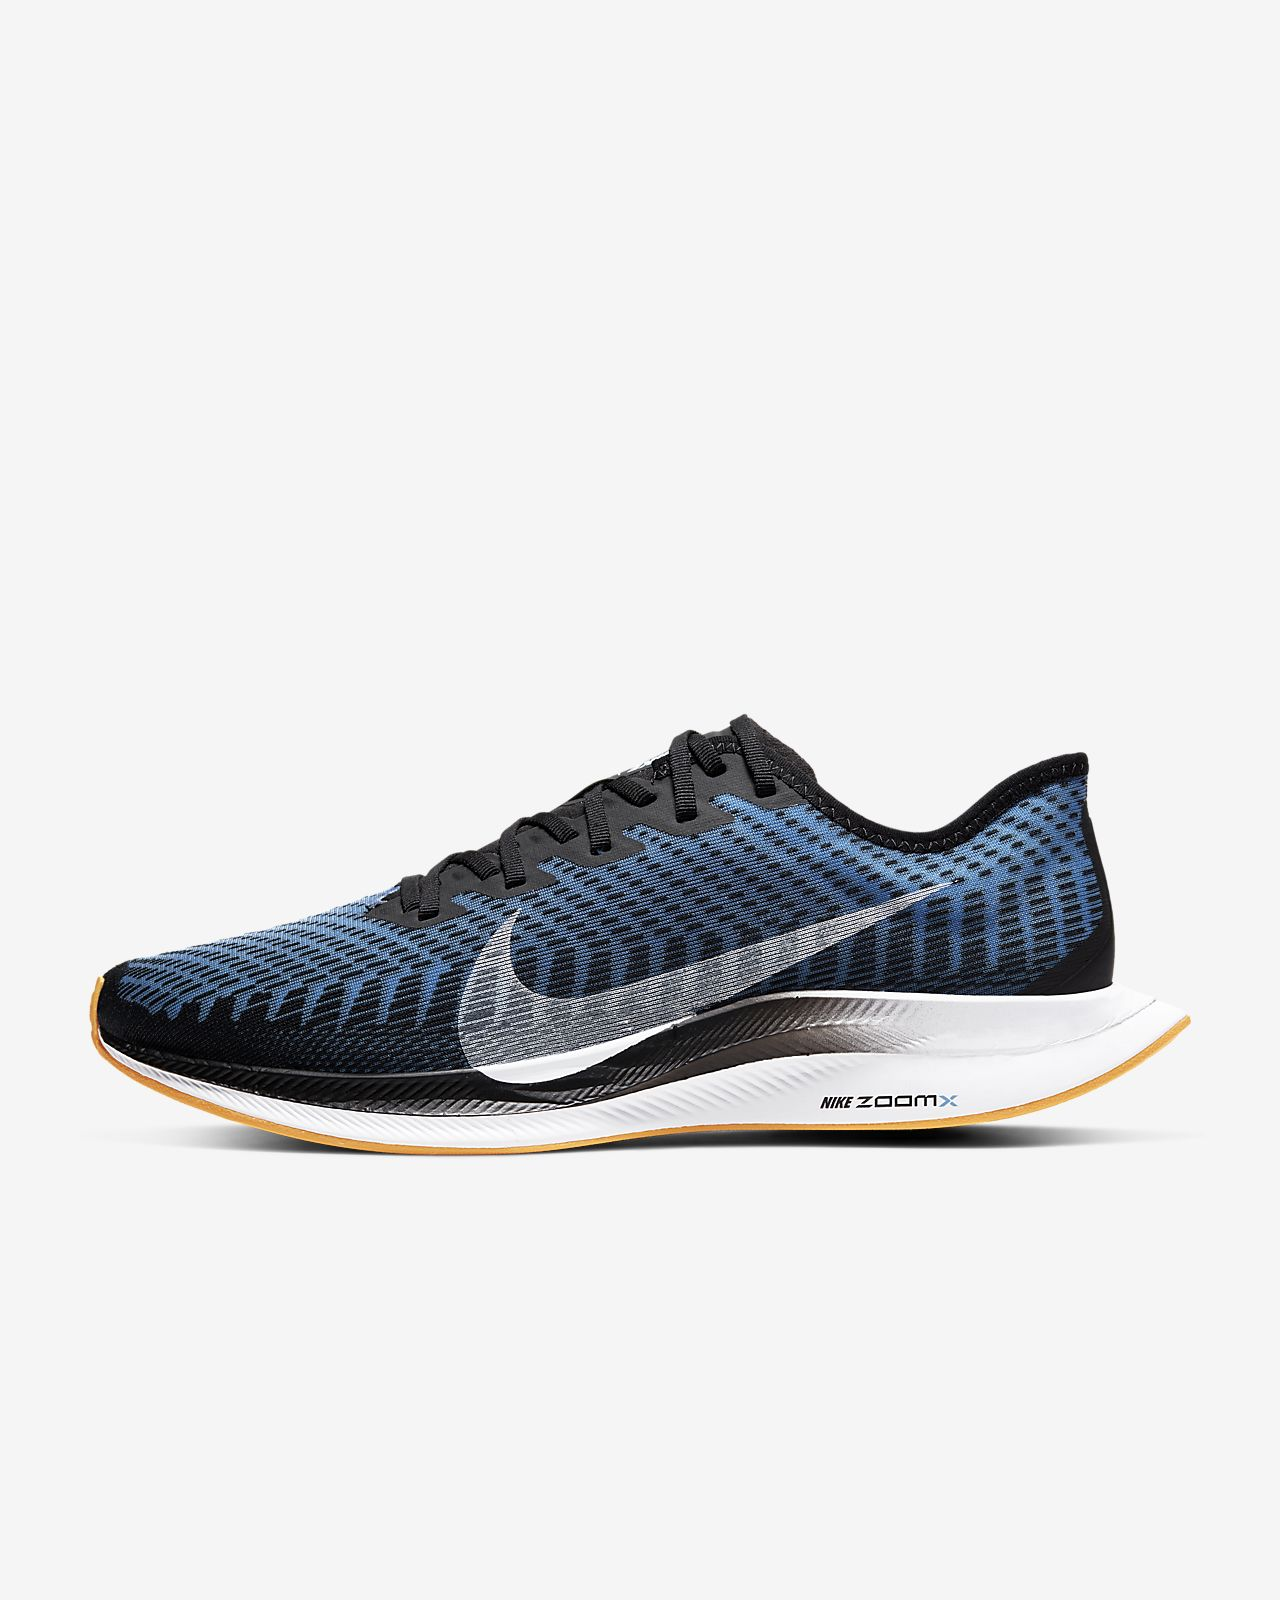 nike pegasus zoom turbo